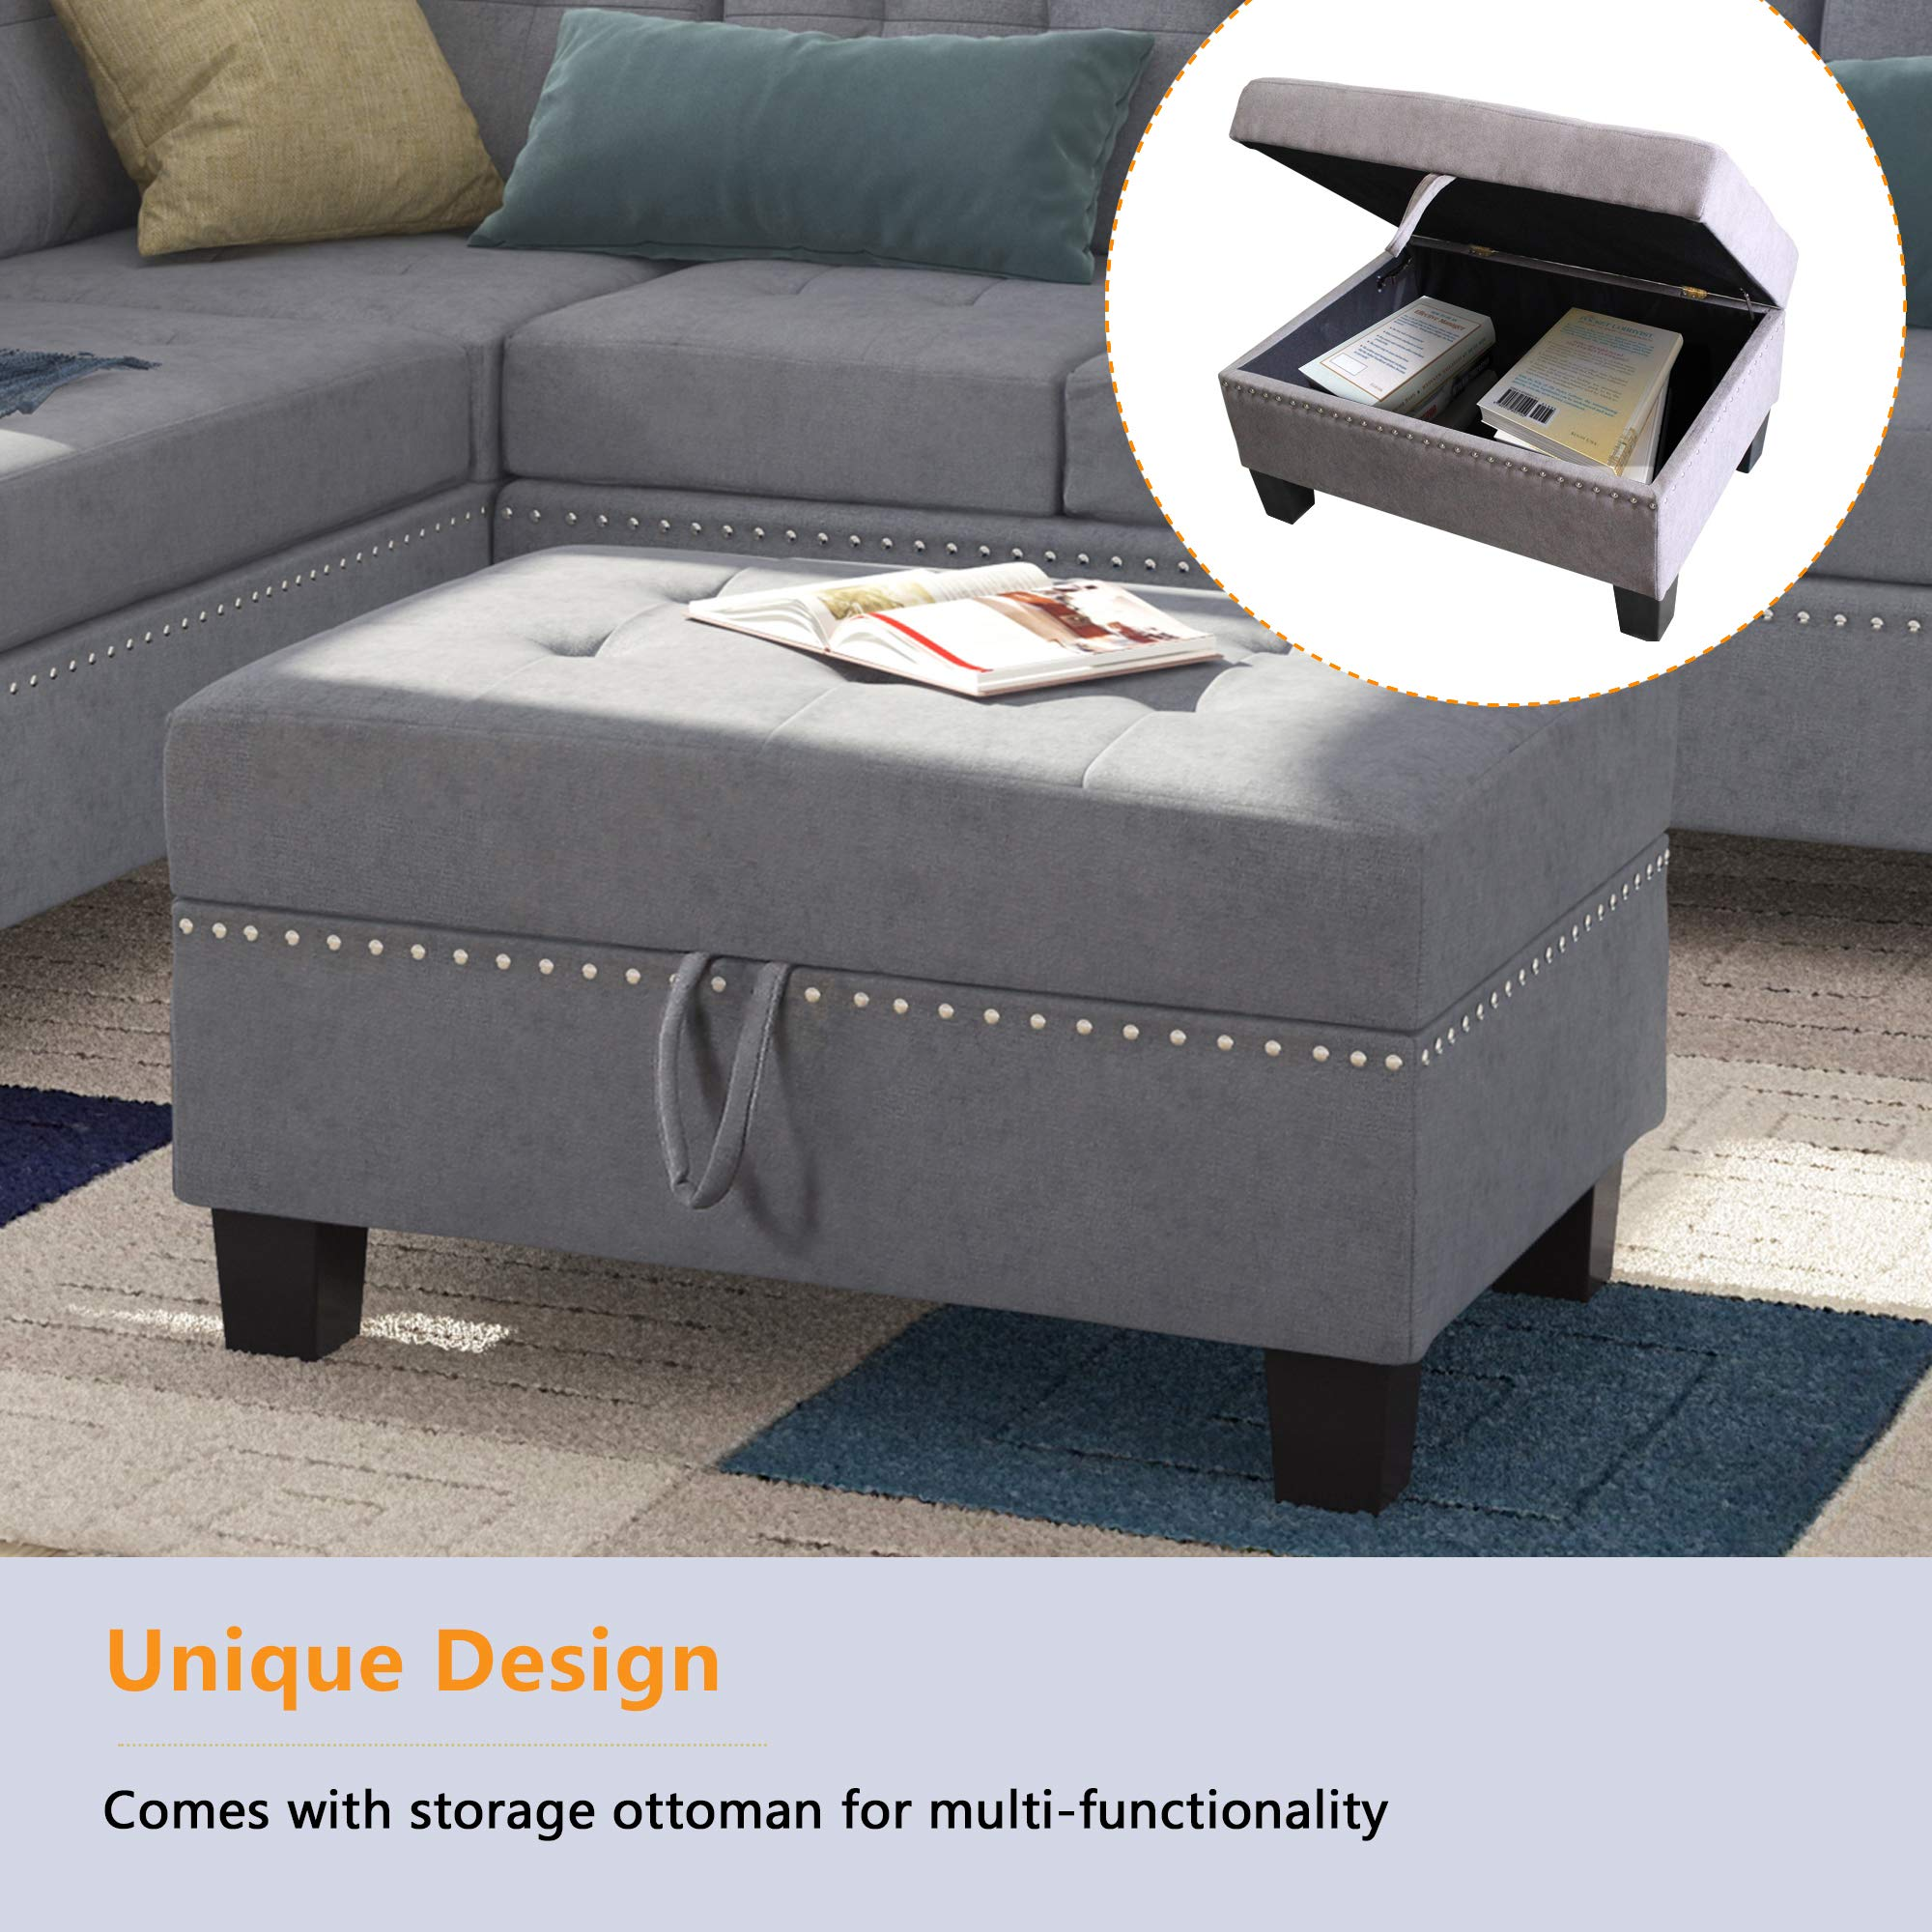 Admirable Harper Bright Designs Sectional Sofa Couch With L Chaise Lounger And Storage Ottoman For Living Room Home Furniture Set Grey Inzonedesignstudio Interior Chair Design Inzonedesignstudiocom